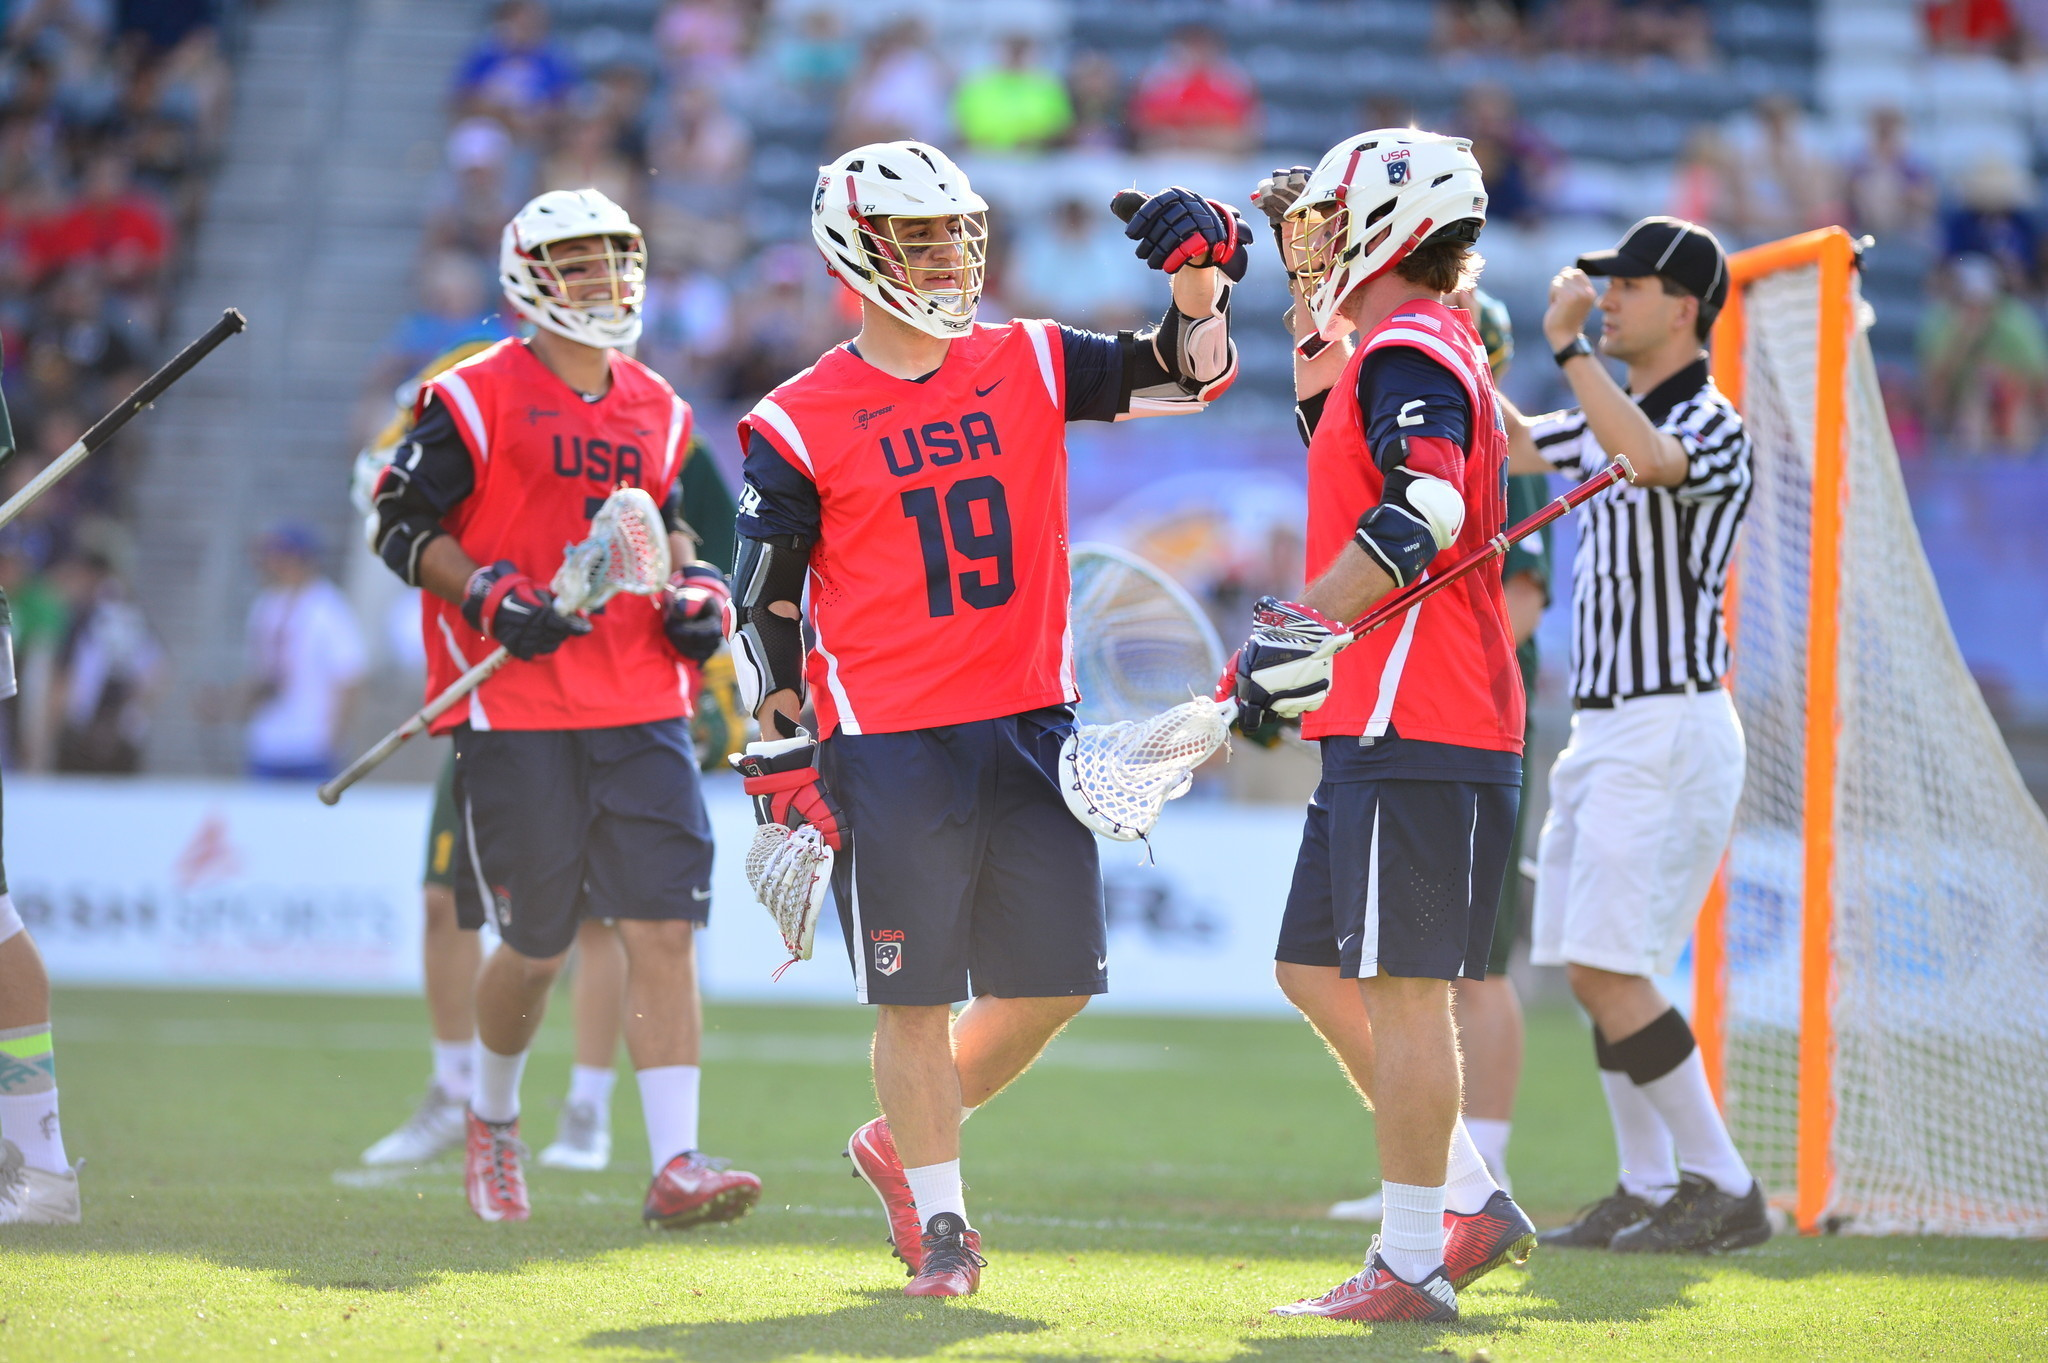 The FIL currently has 62 member nations and holds five World Championships: Men's Lacrosse World Championship; Under Men's Lacrosse World Championship; Men's World Indoor Lacrosse Championship; Women's Lacrosse World Cup; and Under Women's Lacrosse World Championship. Each event is held on a quadrennial basis.